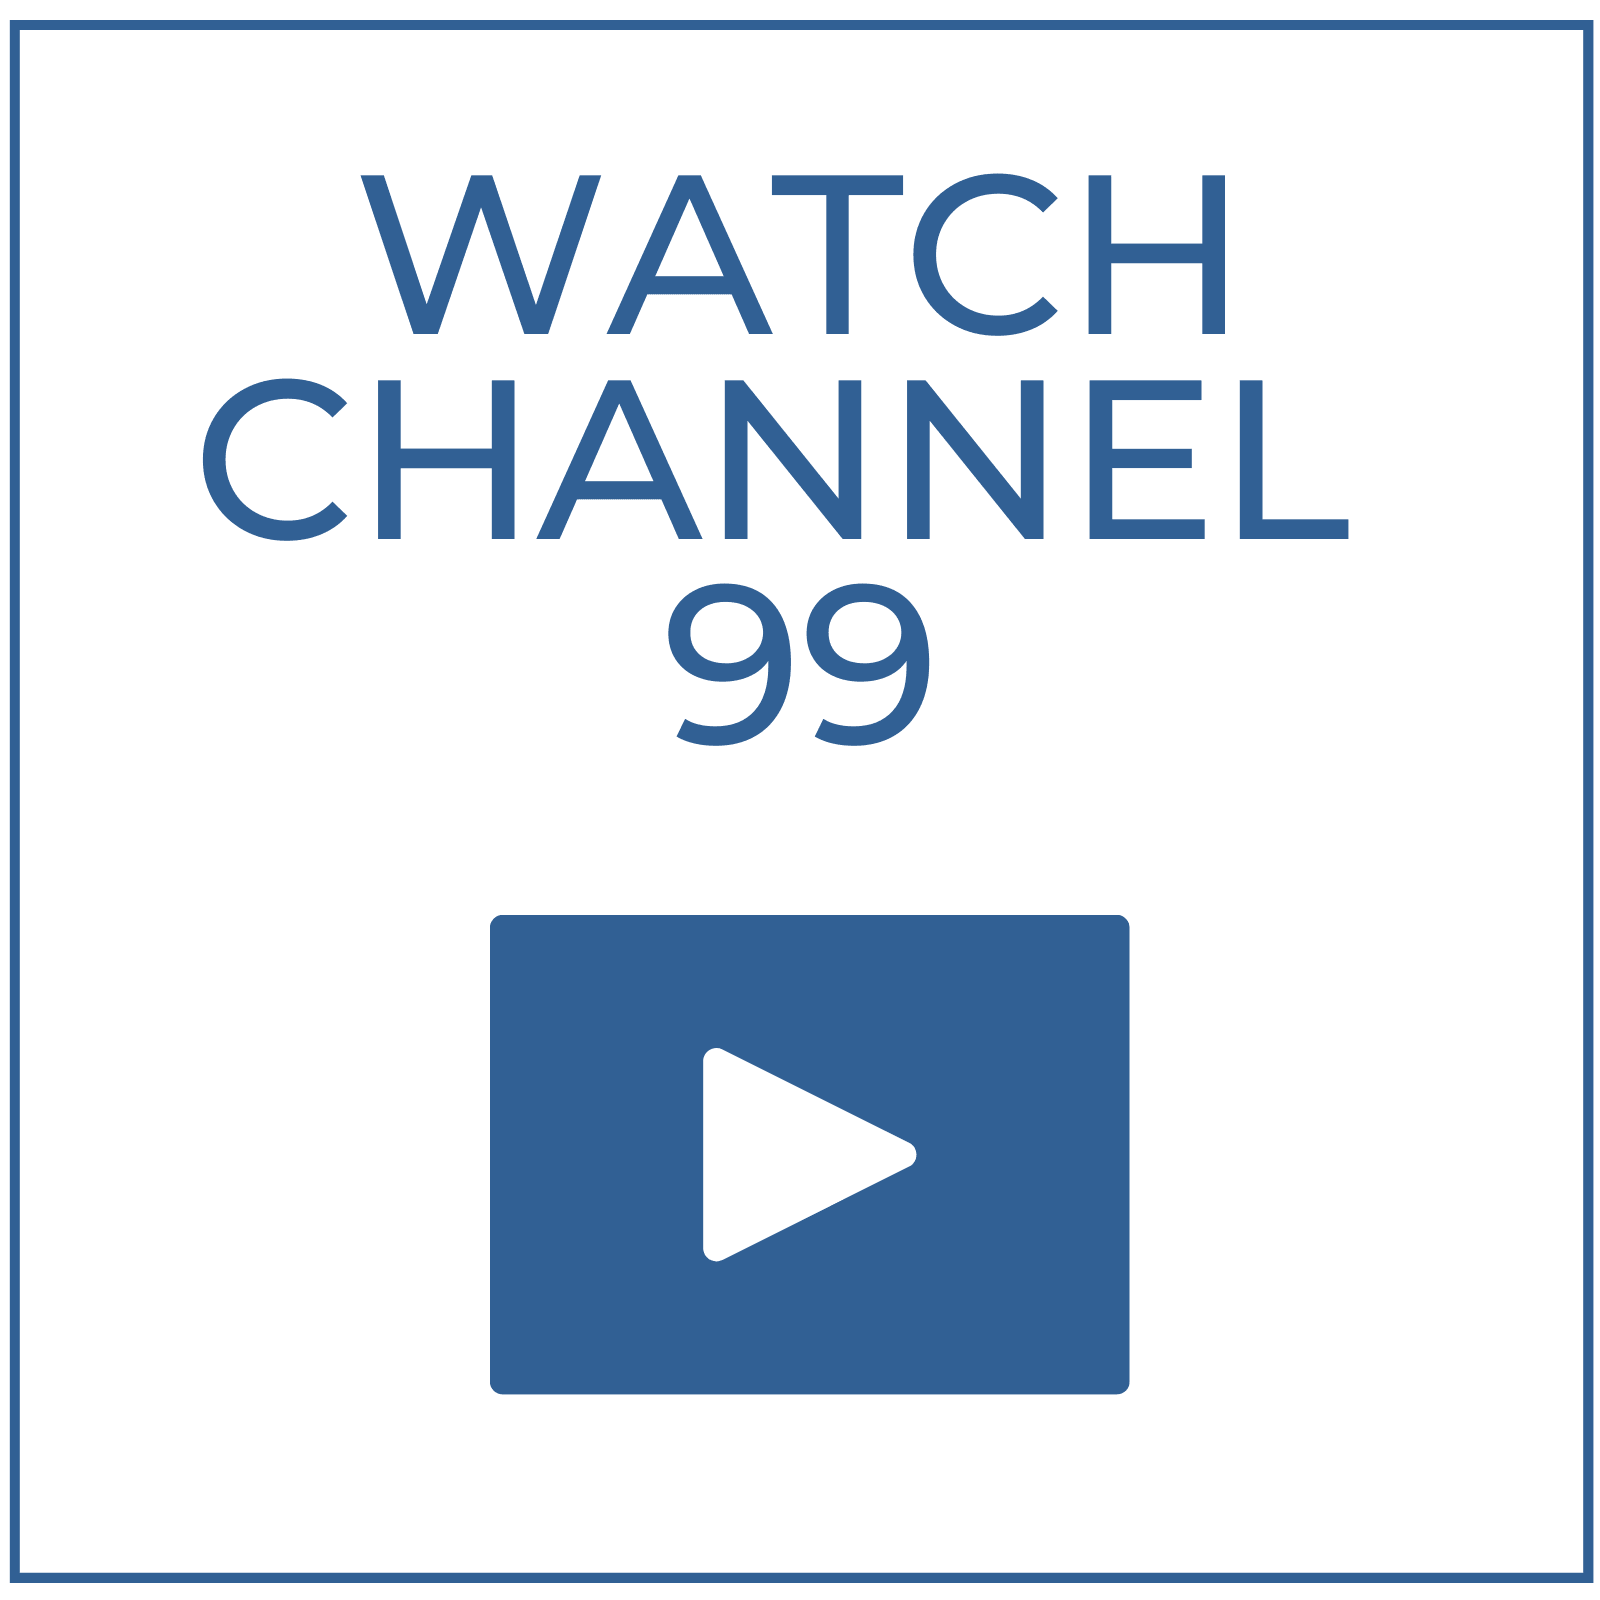 Watch Channel 99